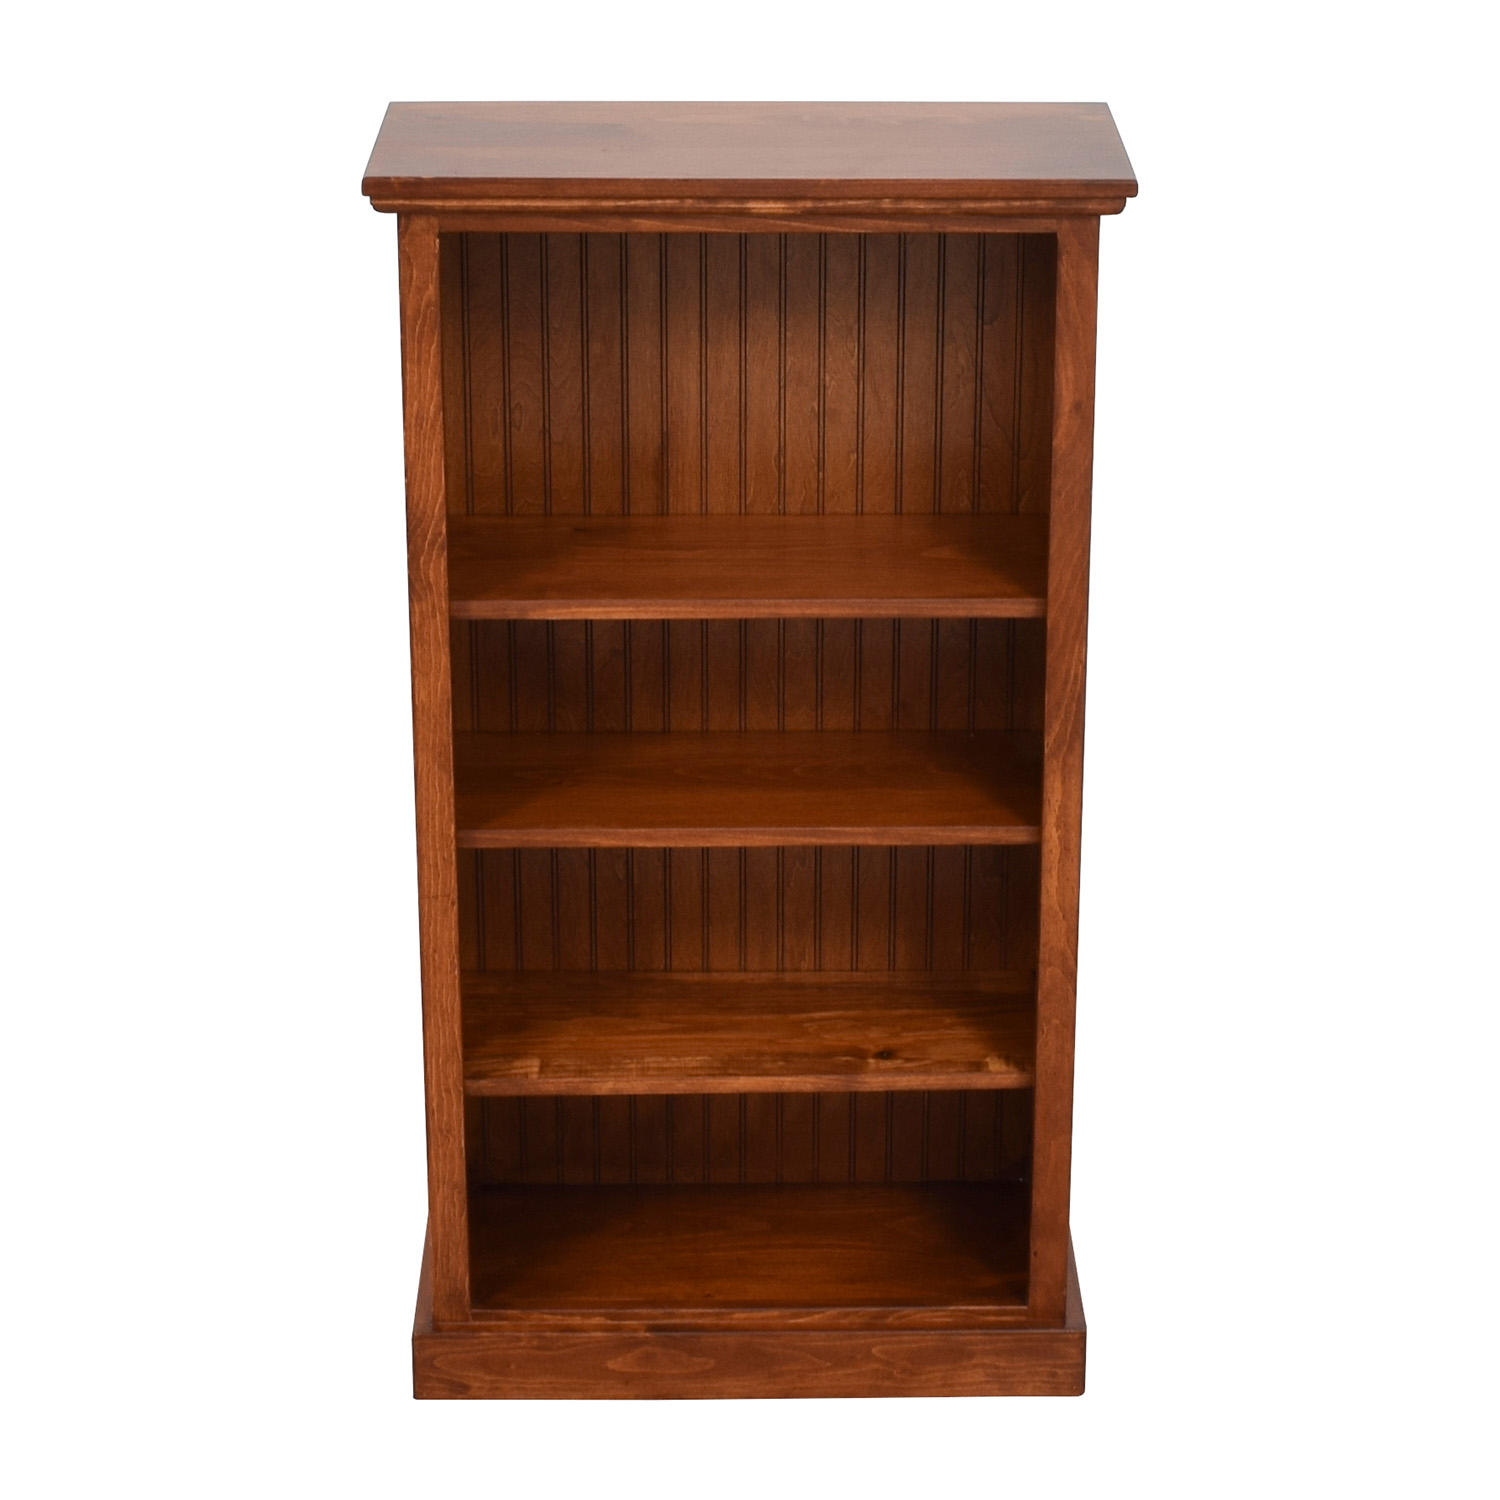 buy Gothic Cabinet Craft Gothic Cabinet Craft Four Shelf Bookcase online